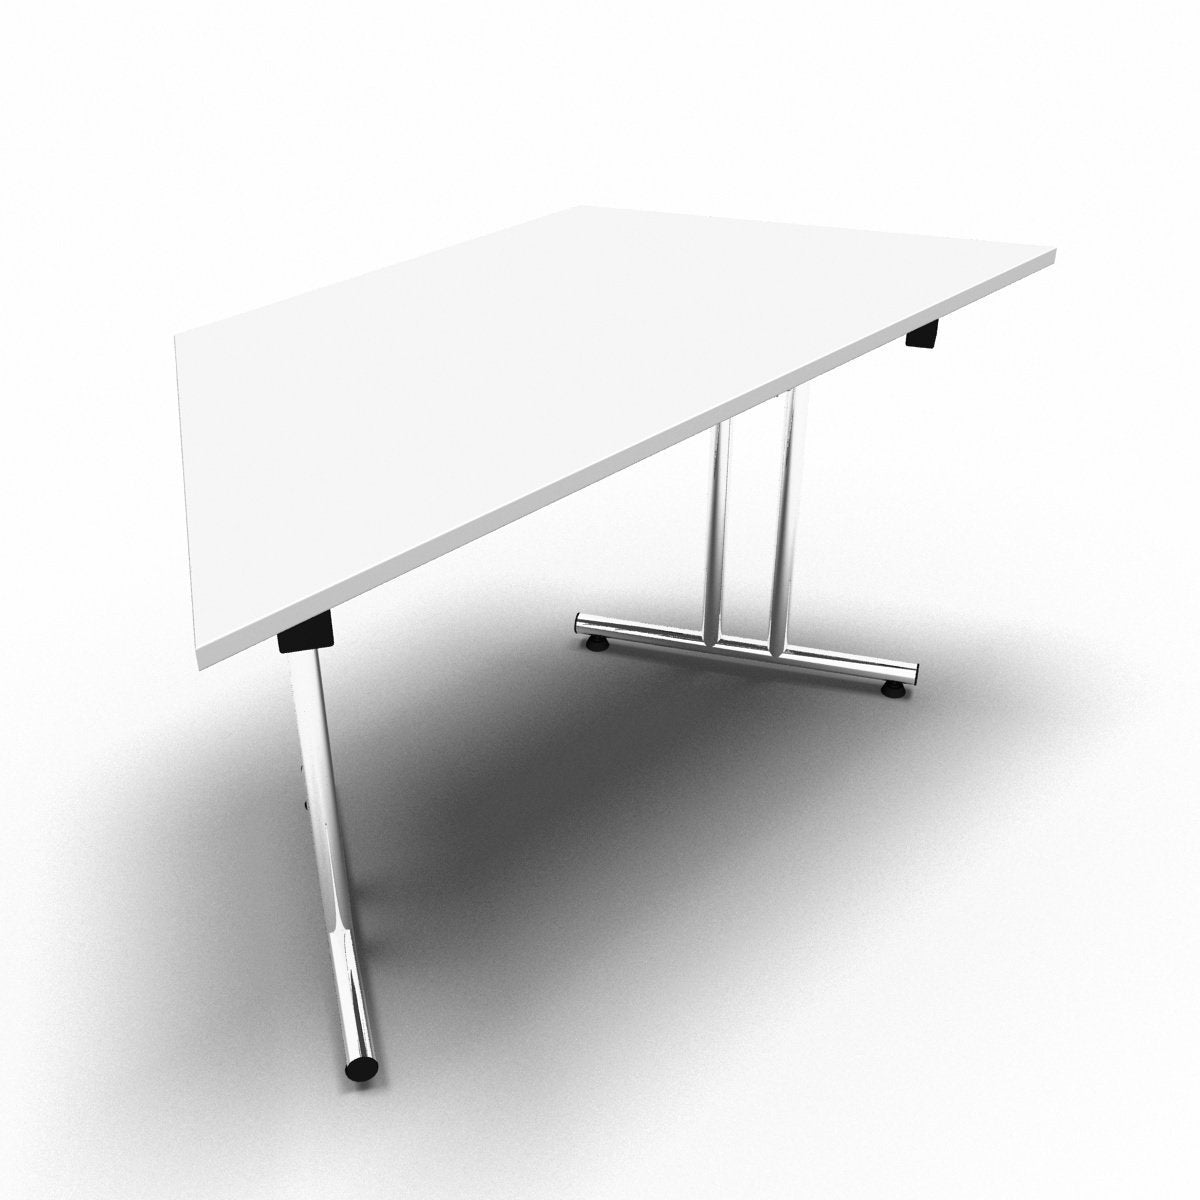 Table 1400 x 700 x 730mm / Trapezoidal / White Synergy Folding Tables